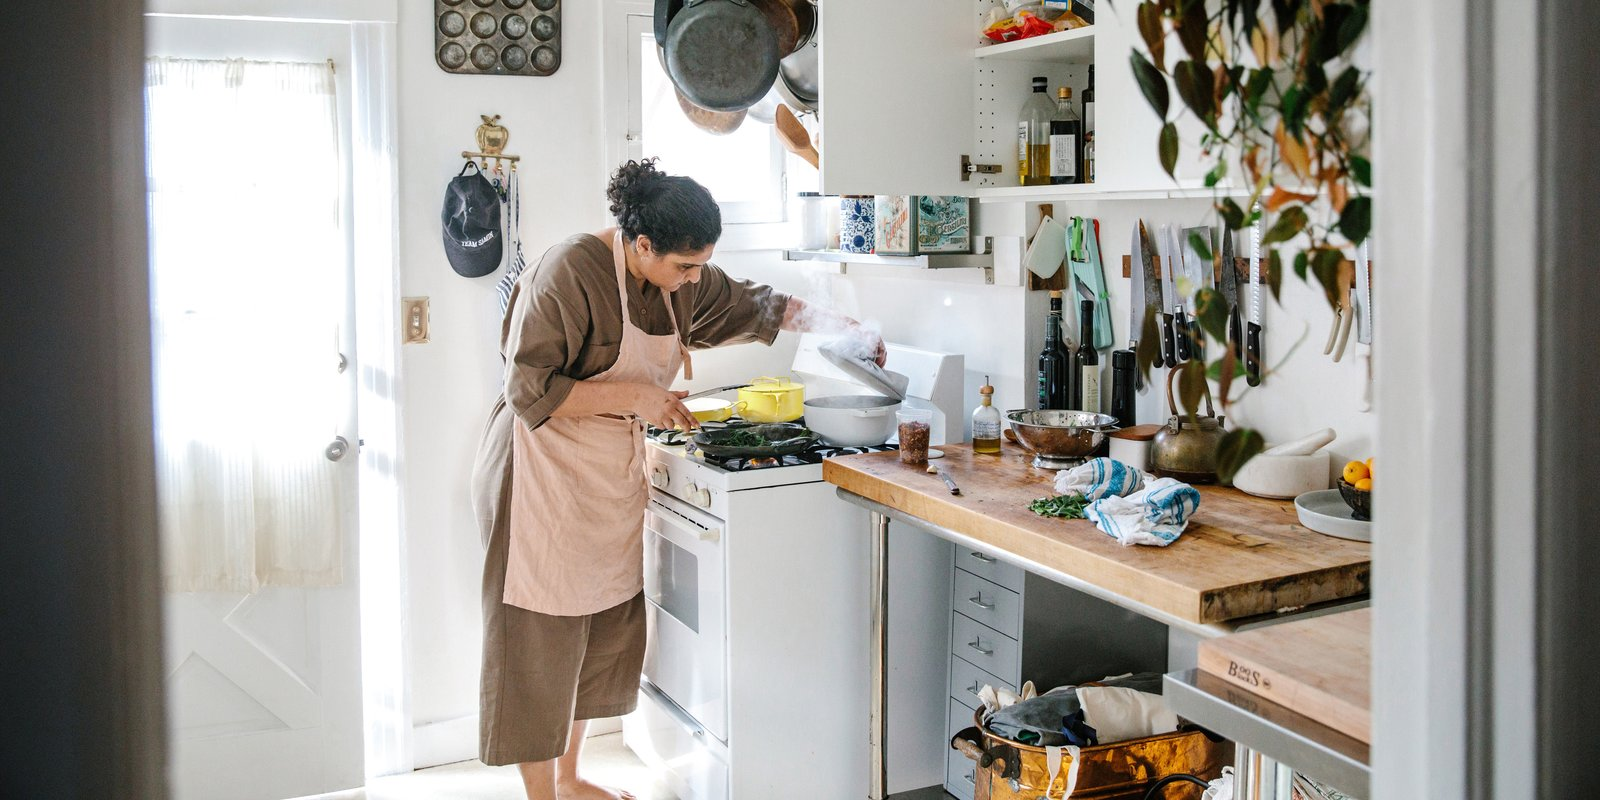 Kitchens We Love: Best-Selling Cookbook Author and Netflix Host Samin Nosrat Opens Her Doors